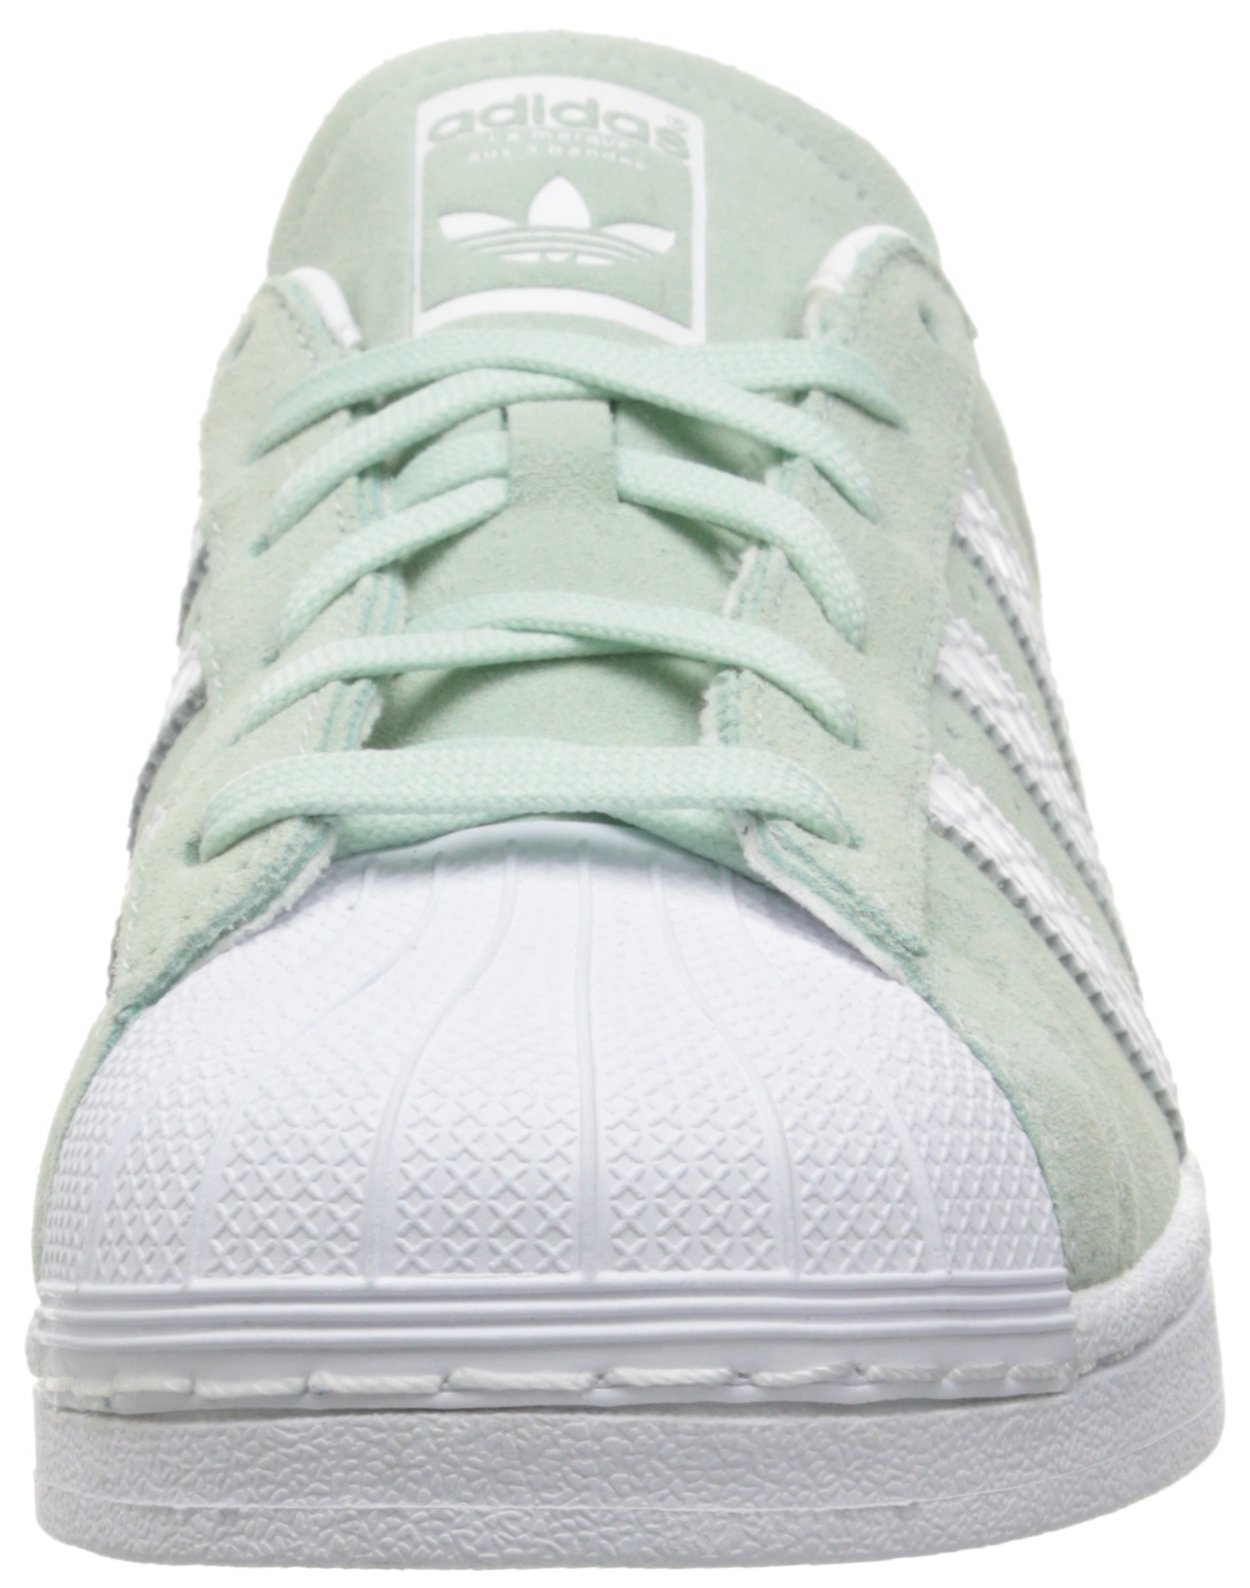 adidas Originals SUPERSTAR Trainers ice mint/white Zalando.co.uk